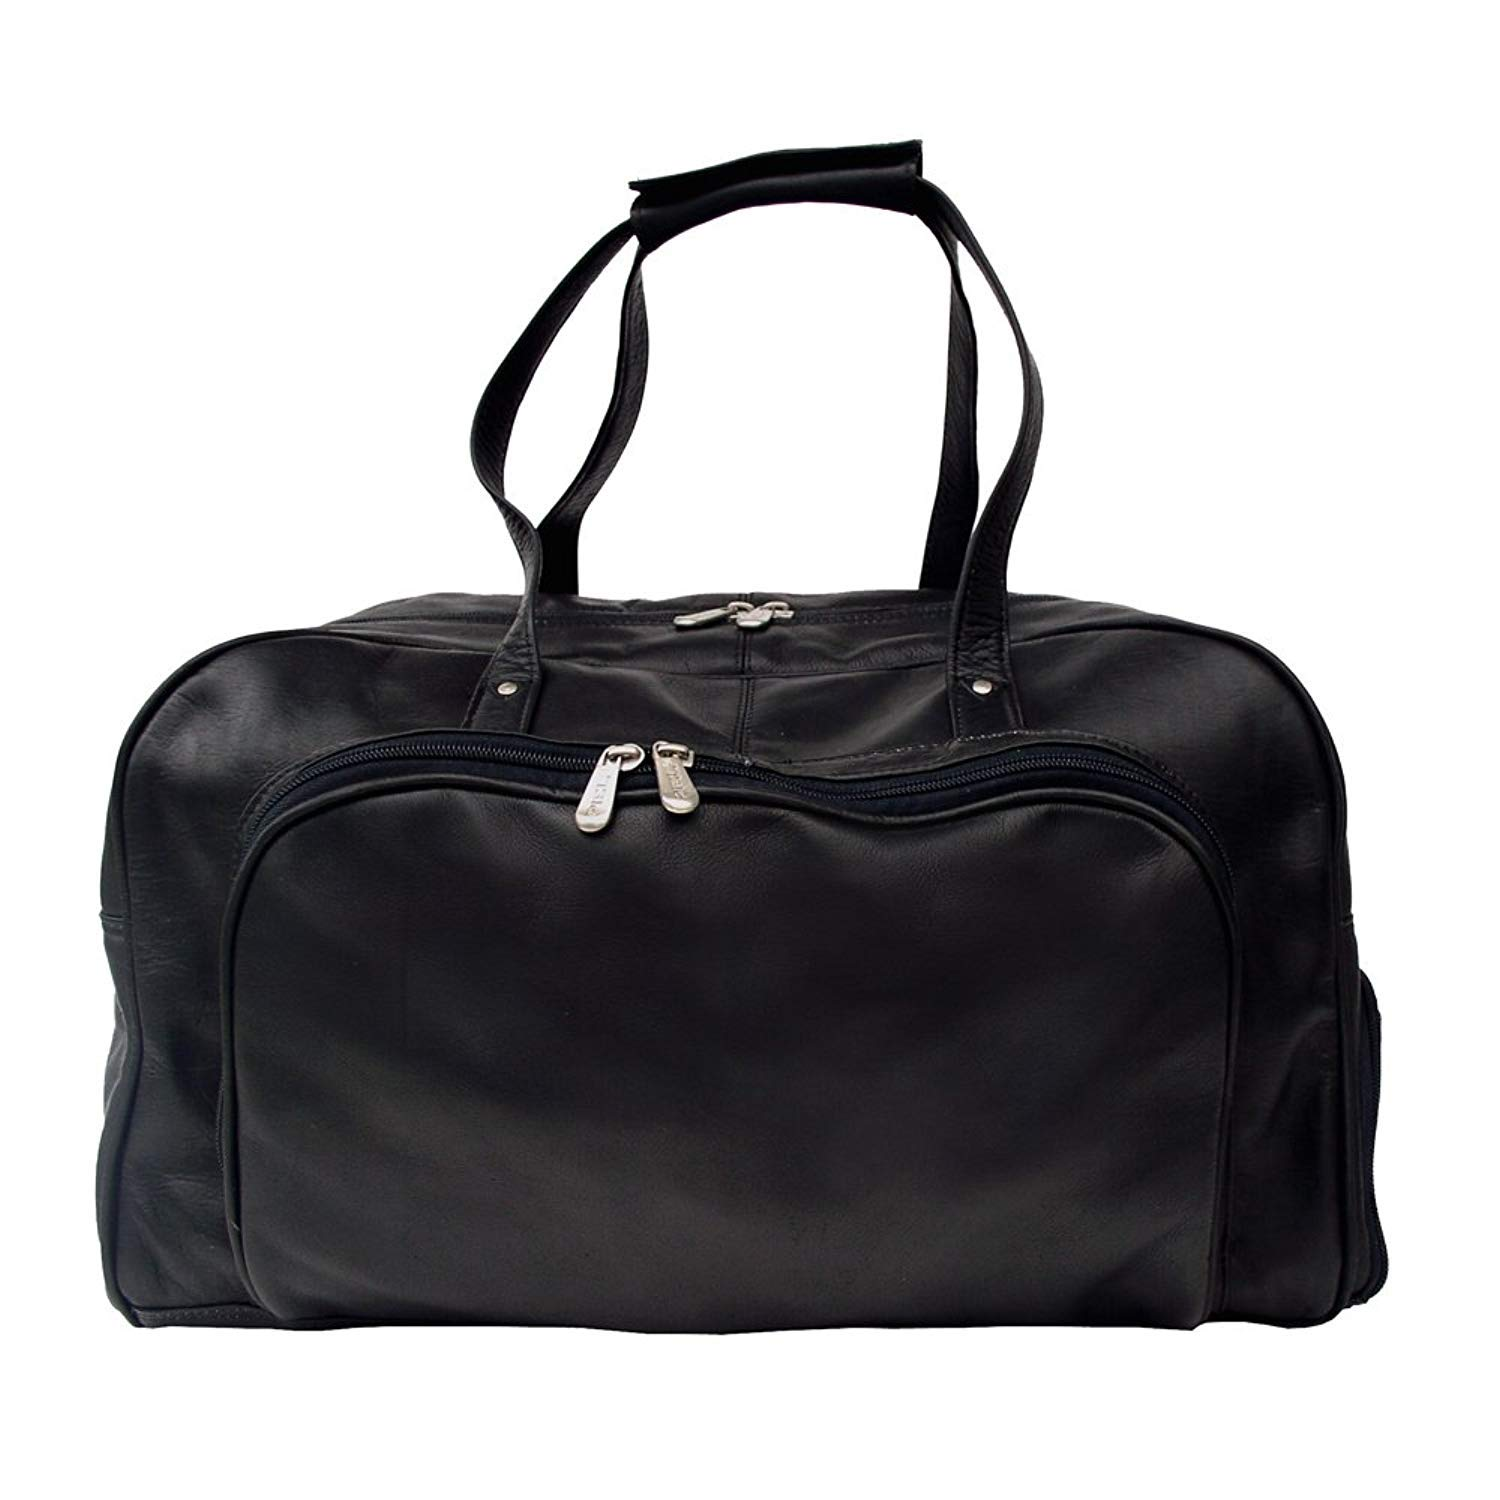 One Size Chocolate Piel Leather Deluxe Carry-On Duffel